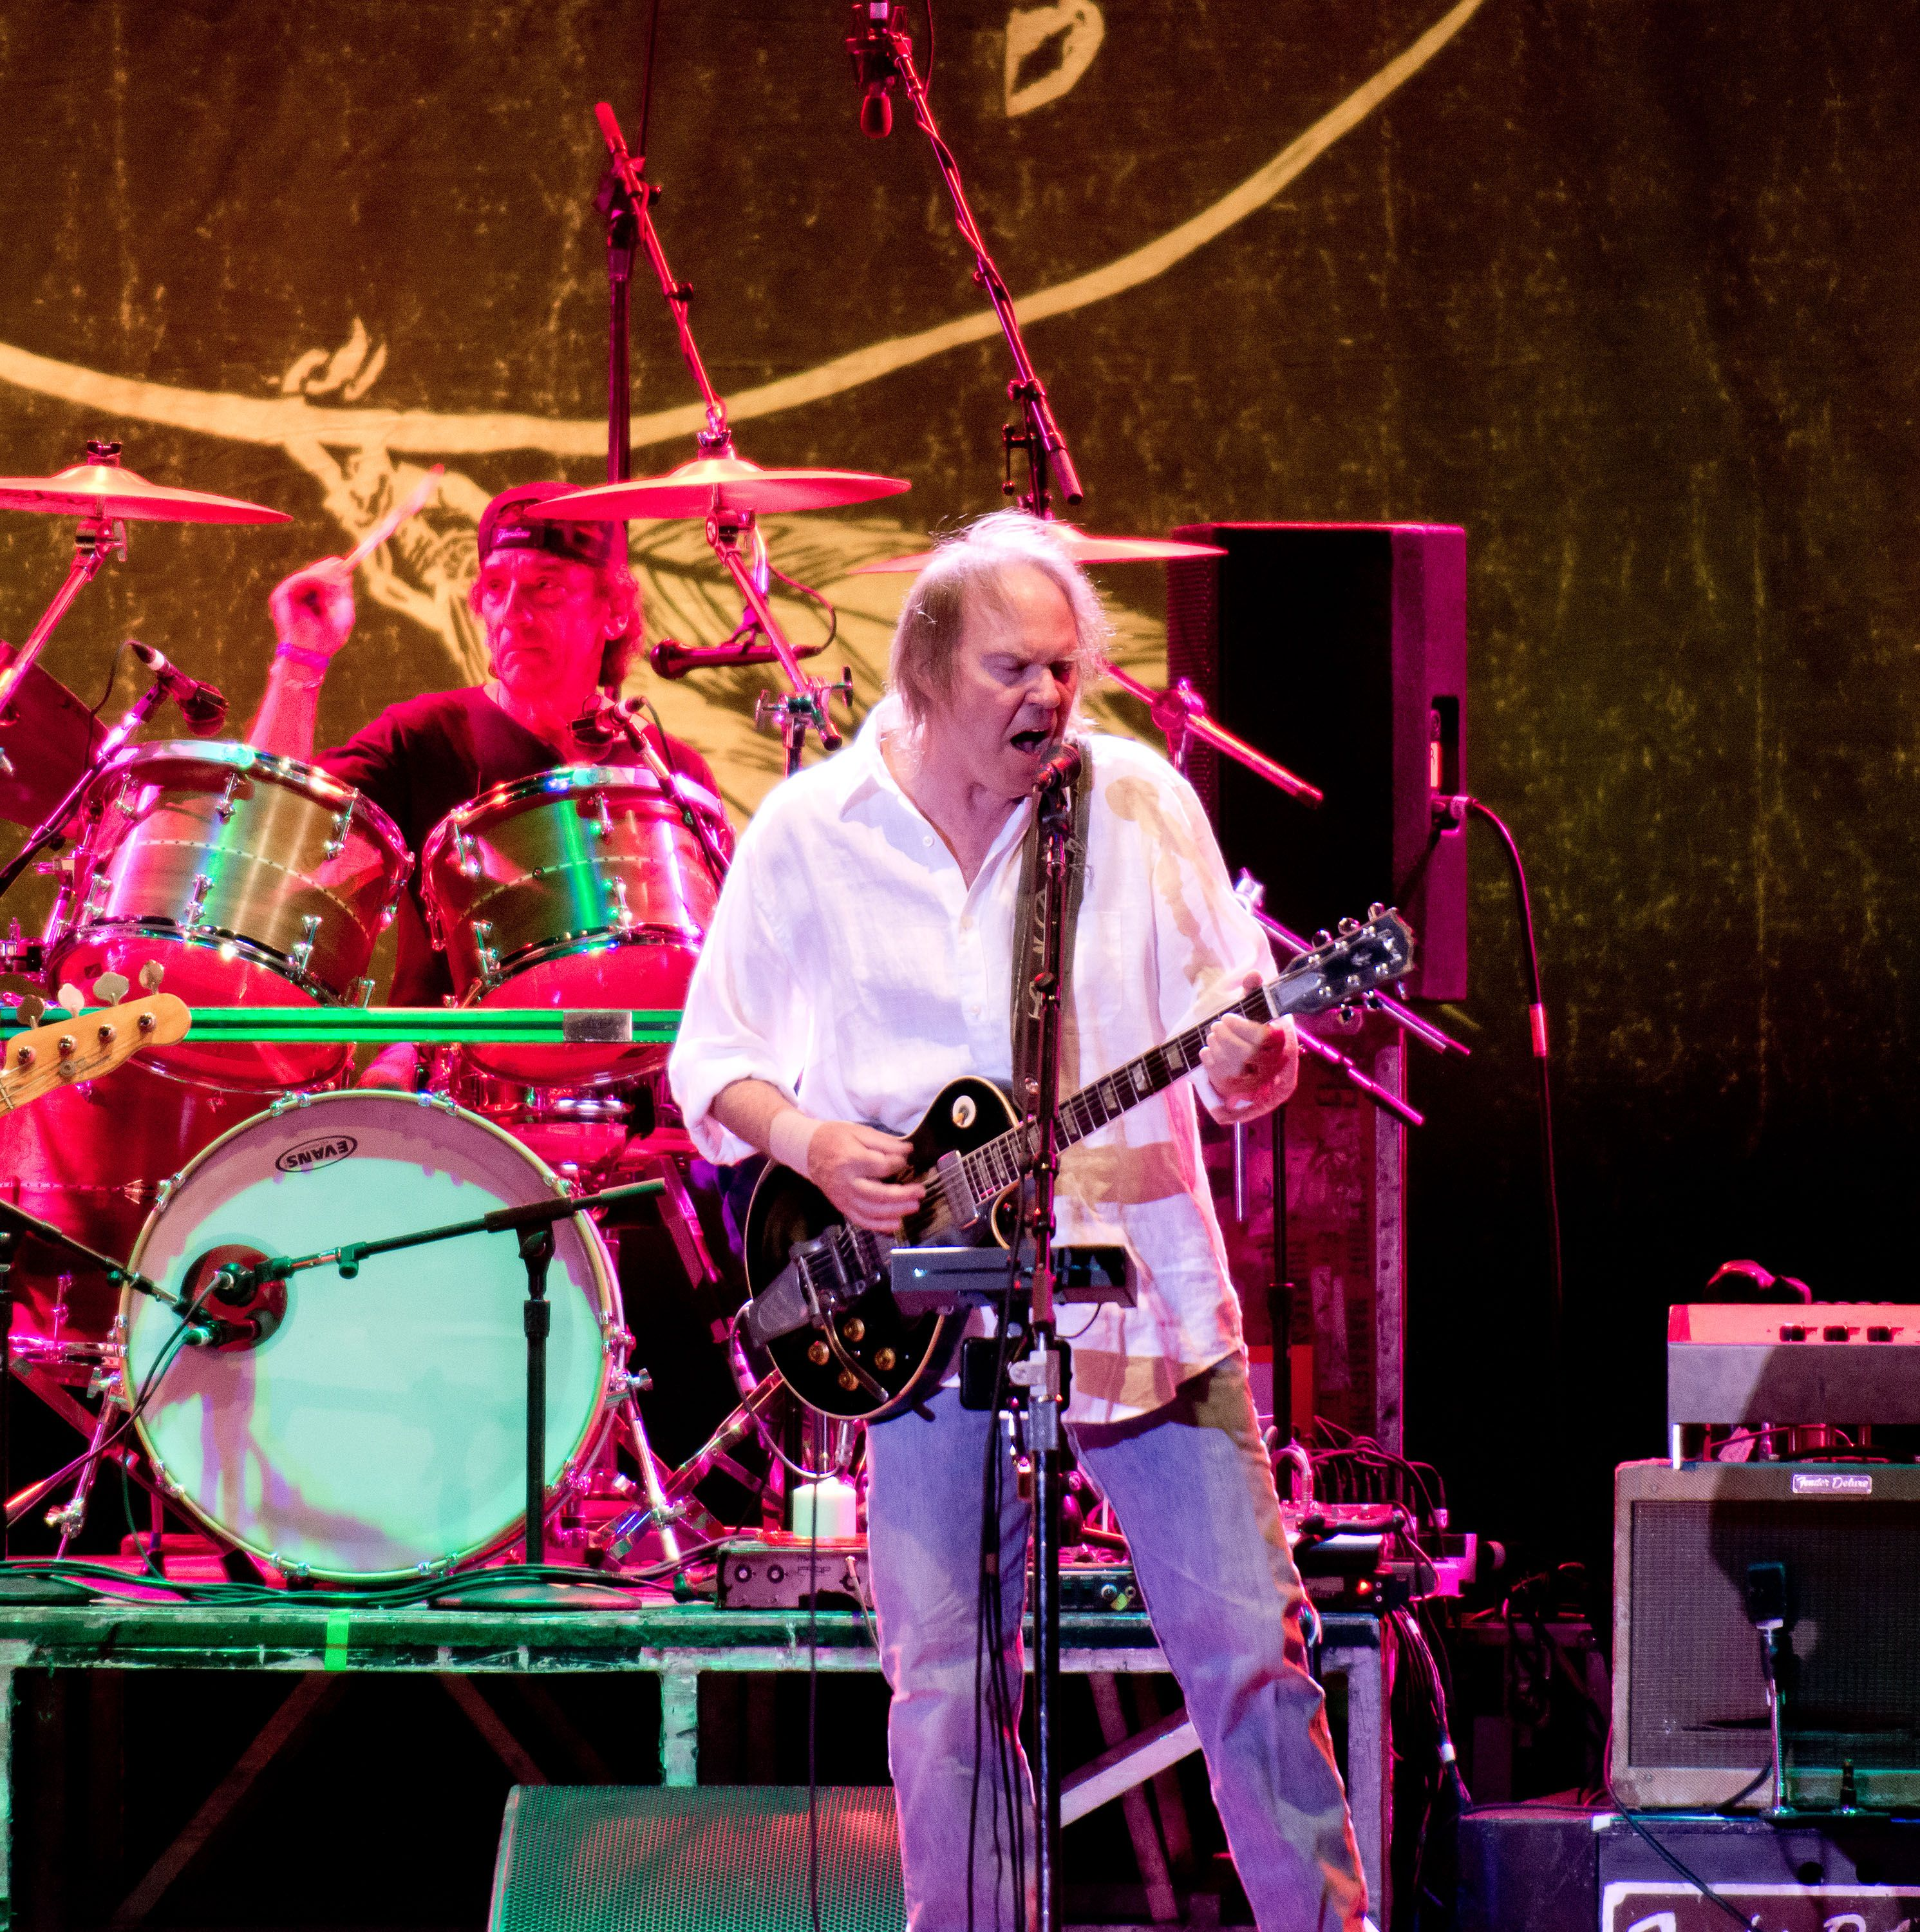 NEIL YOUNG ~ BORN IN CANADA